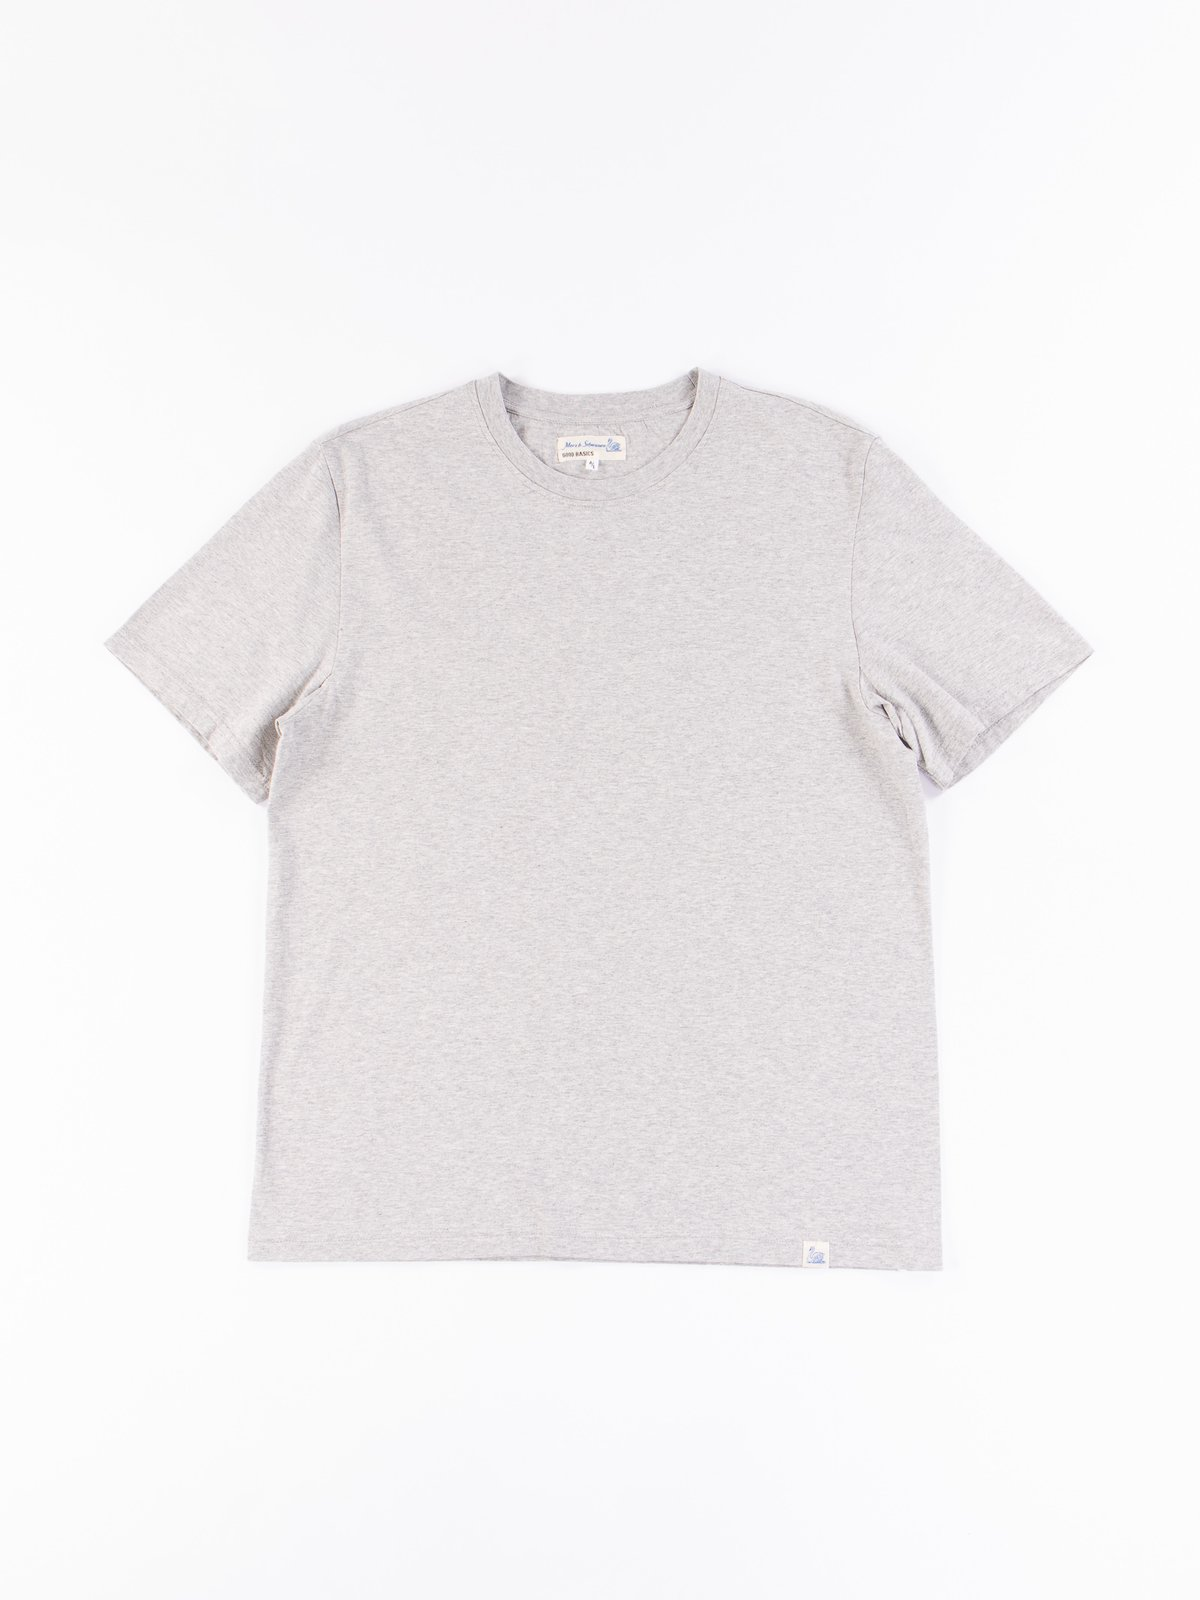 Grey Melange Good Basics CTOS01 Oversized Crew Neck Tee - Image 1